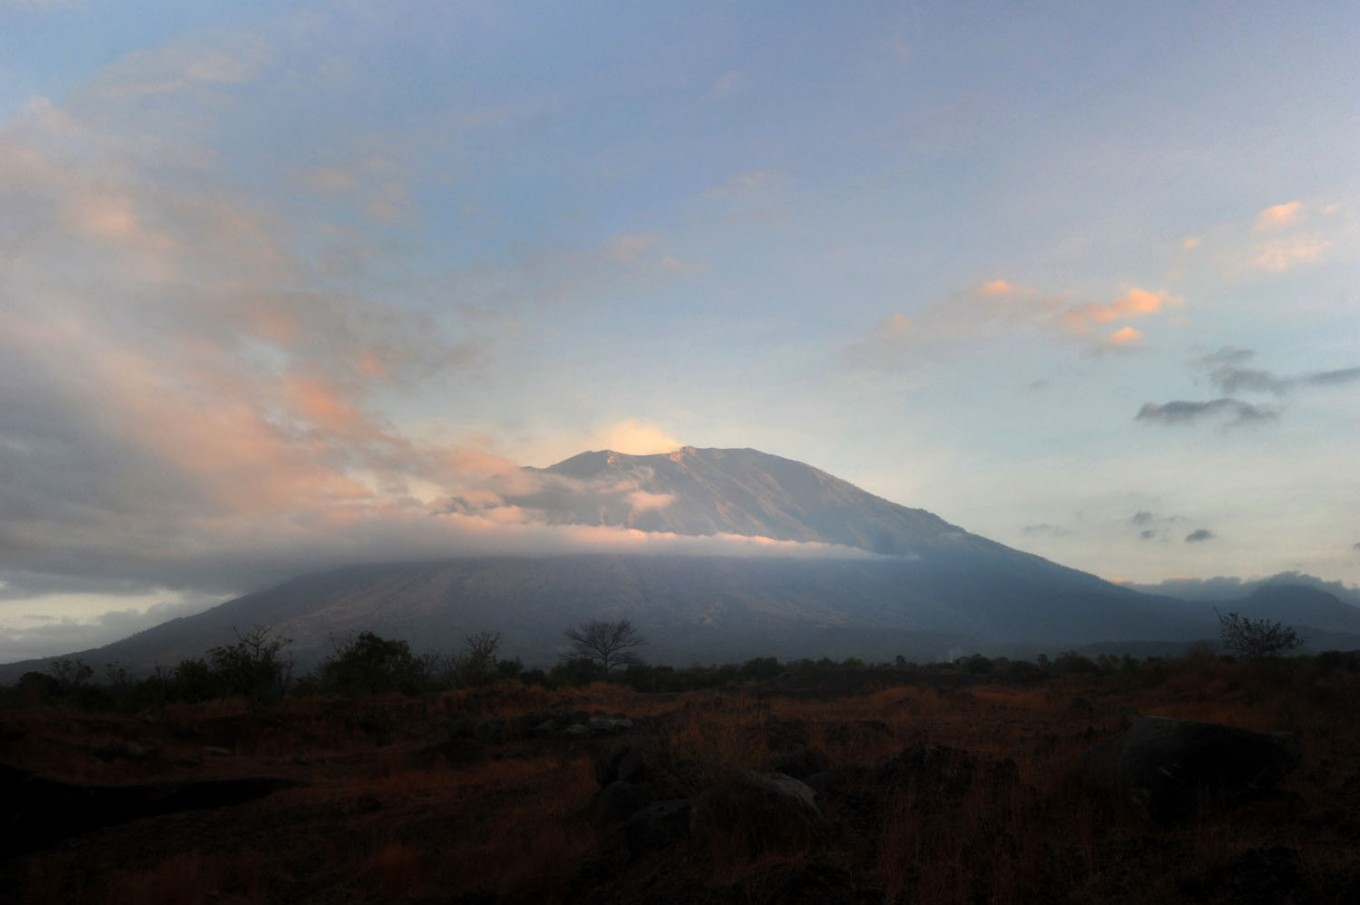 Mt. Agung erupts, prompting volcanology center to issue aviation notice